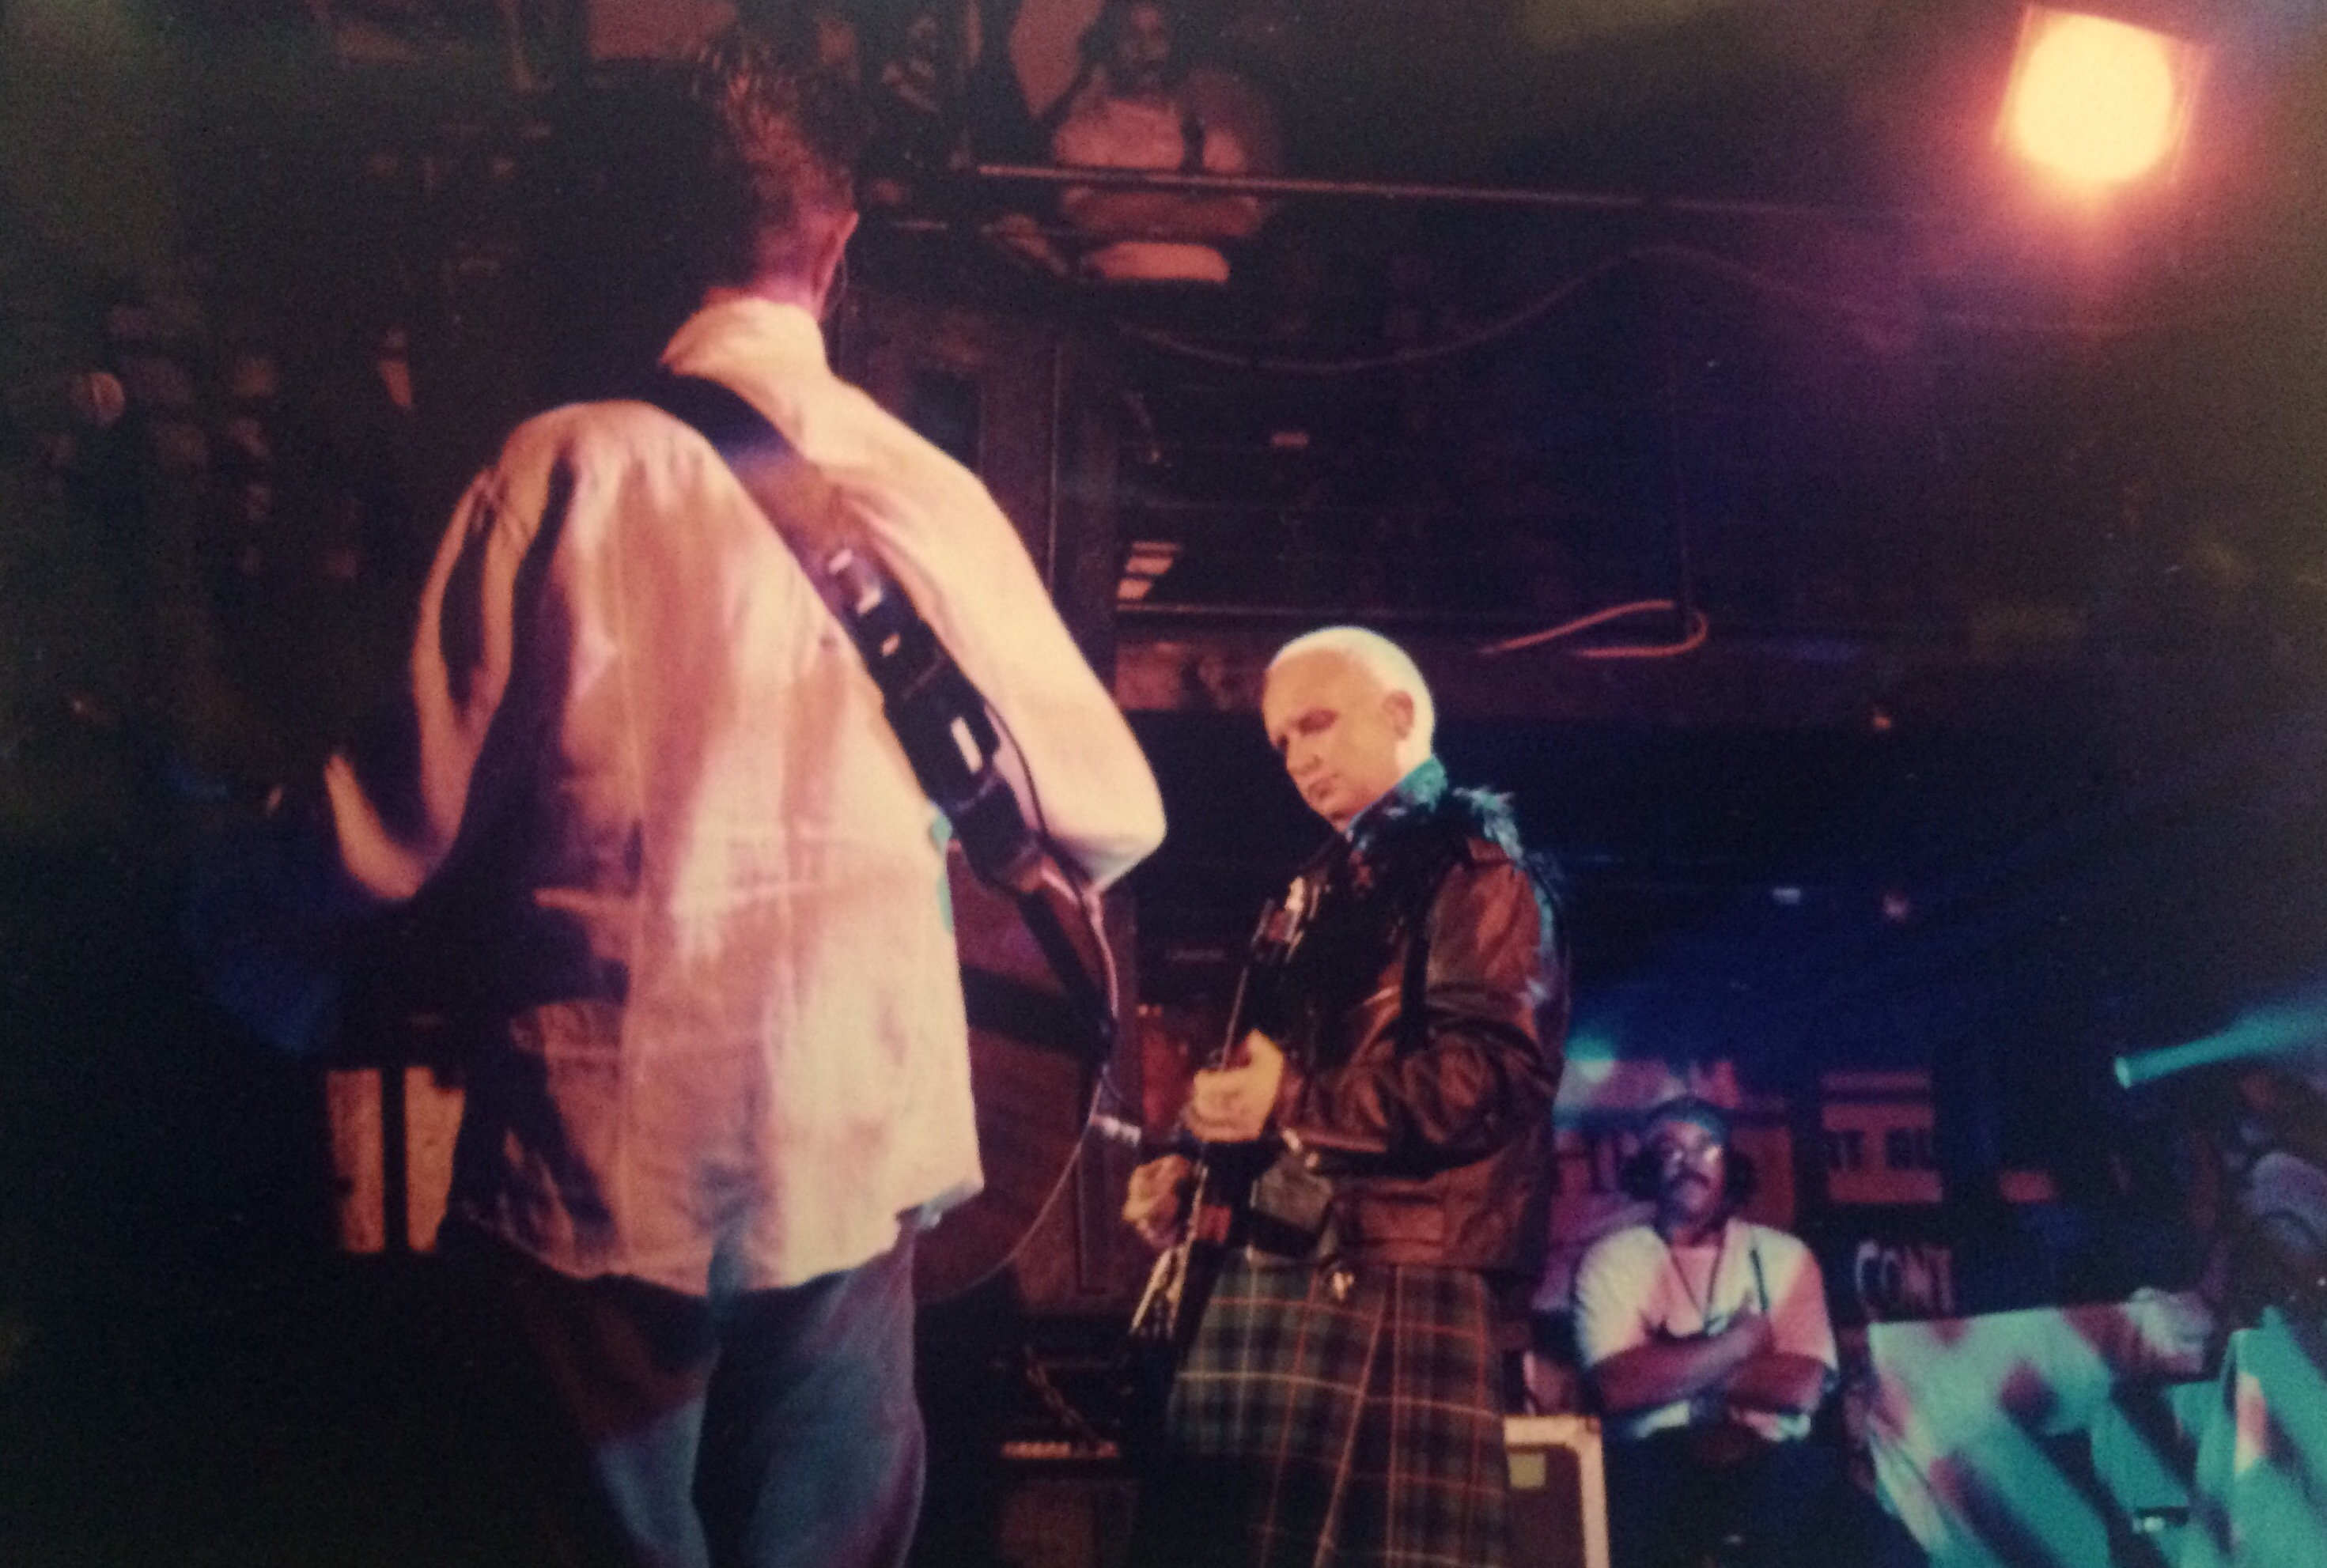 David Bowie Reeves Gabrels by Kelley Curtis outside Chili Pepper 10-7-97